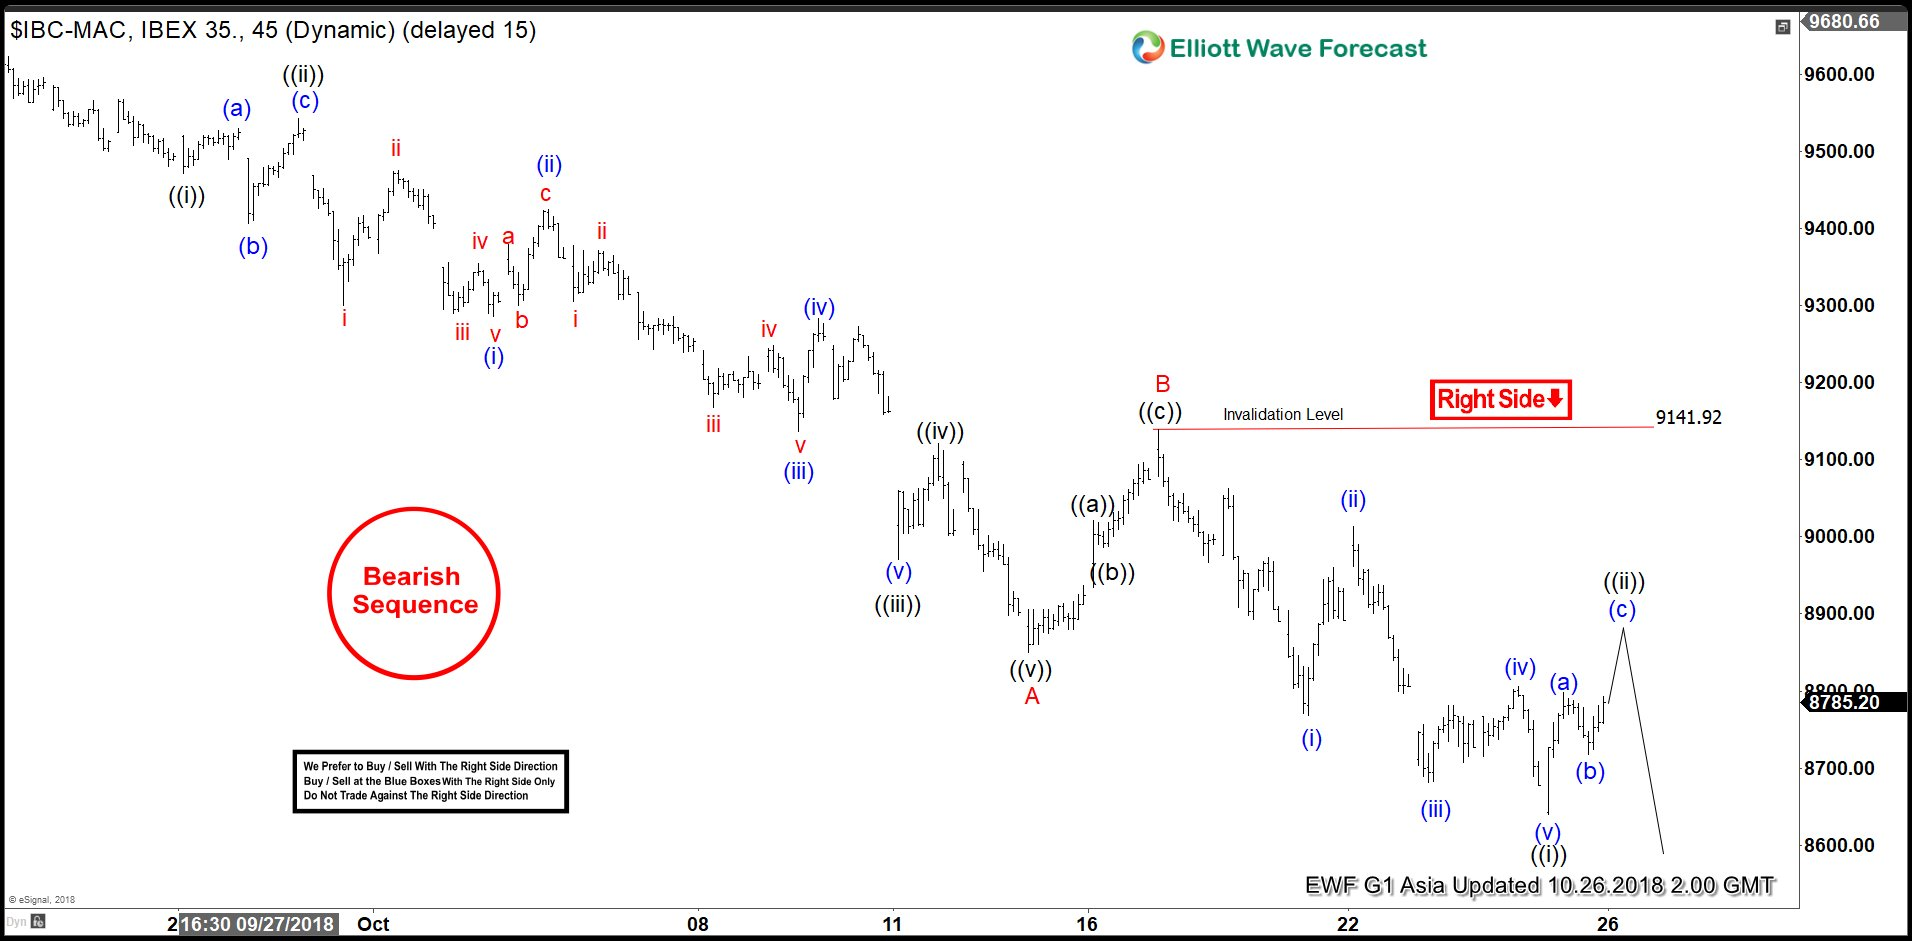 Elliott Wave: Further Downside Looming Large For IBEX?